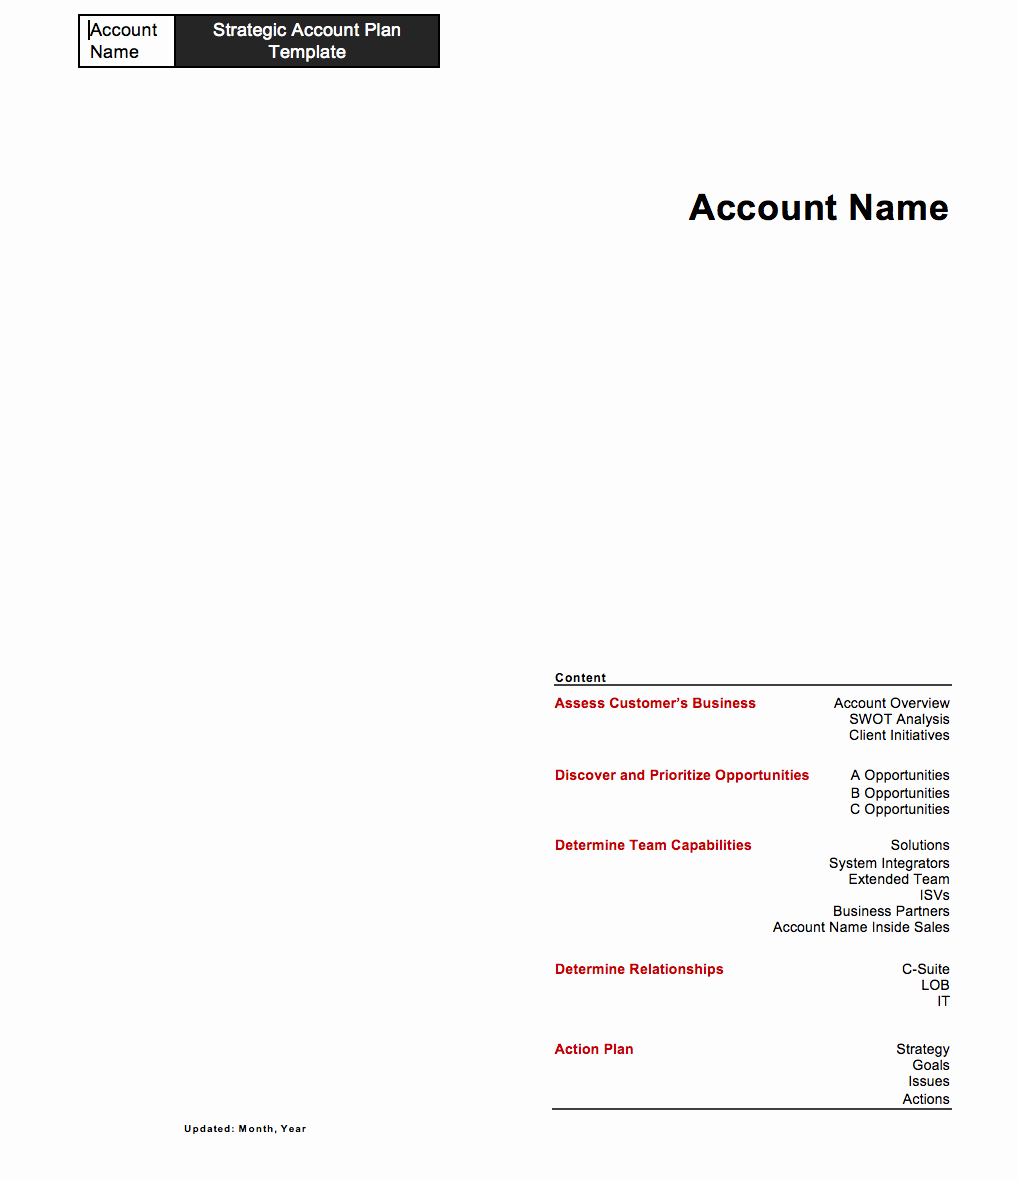 Sales Account Plan Template Best Of Strategic Account Plan Template for B2b Sales Released by